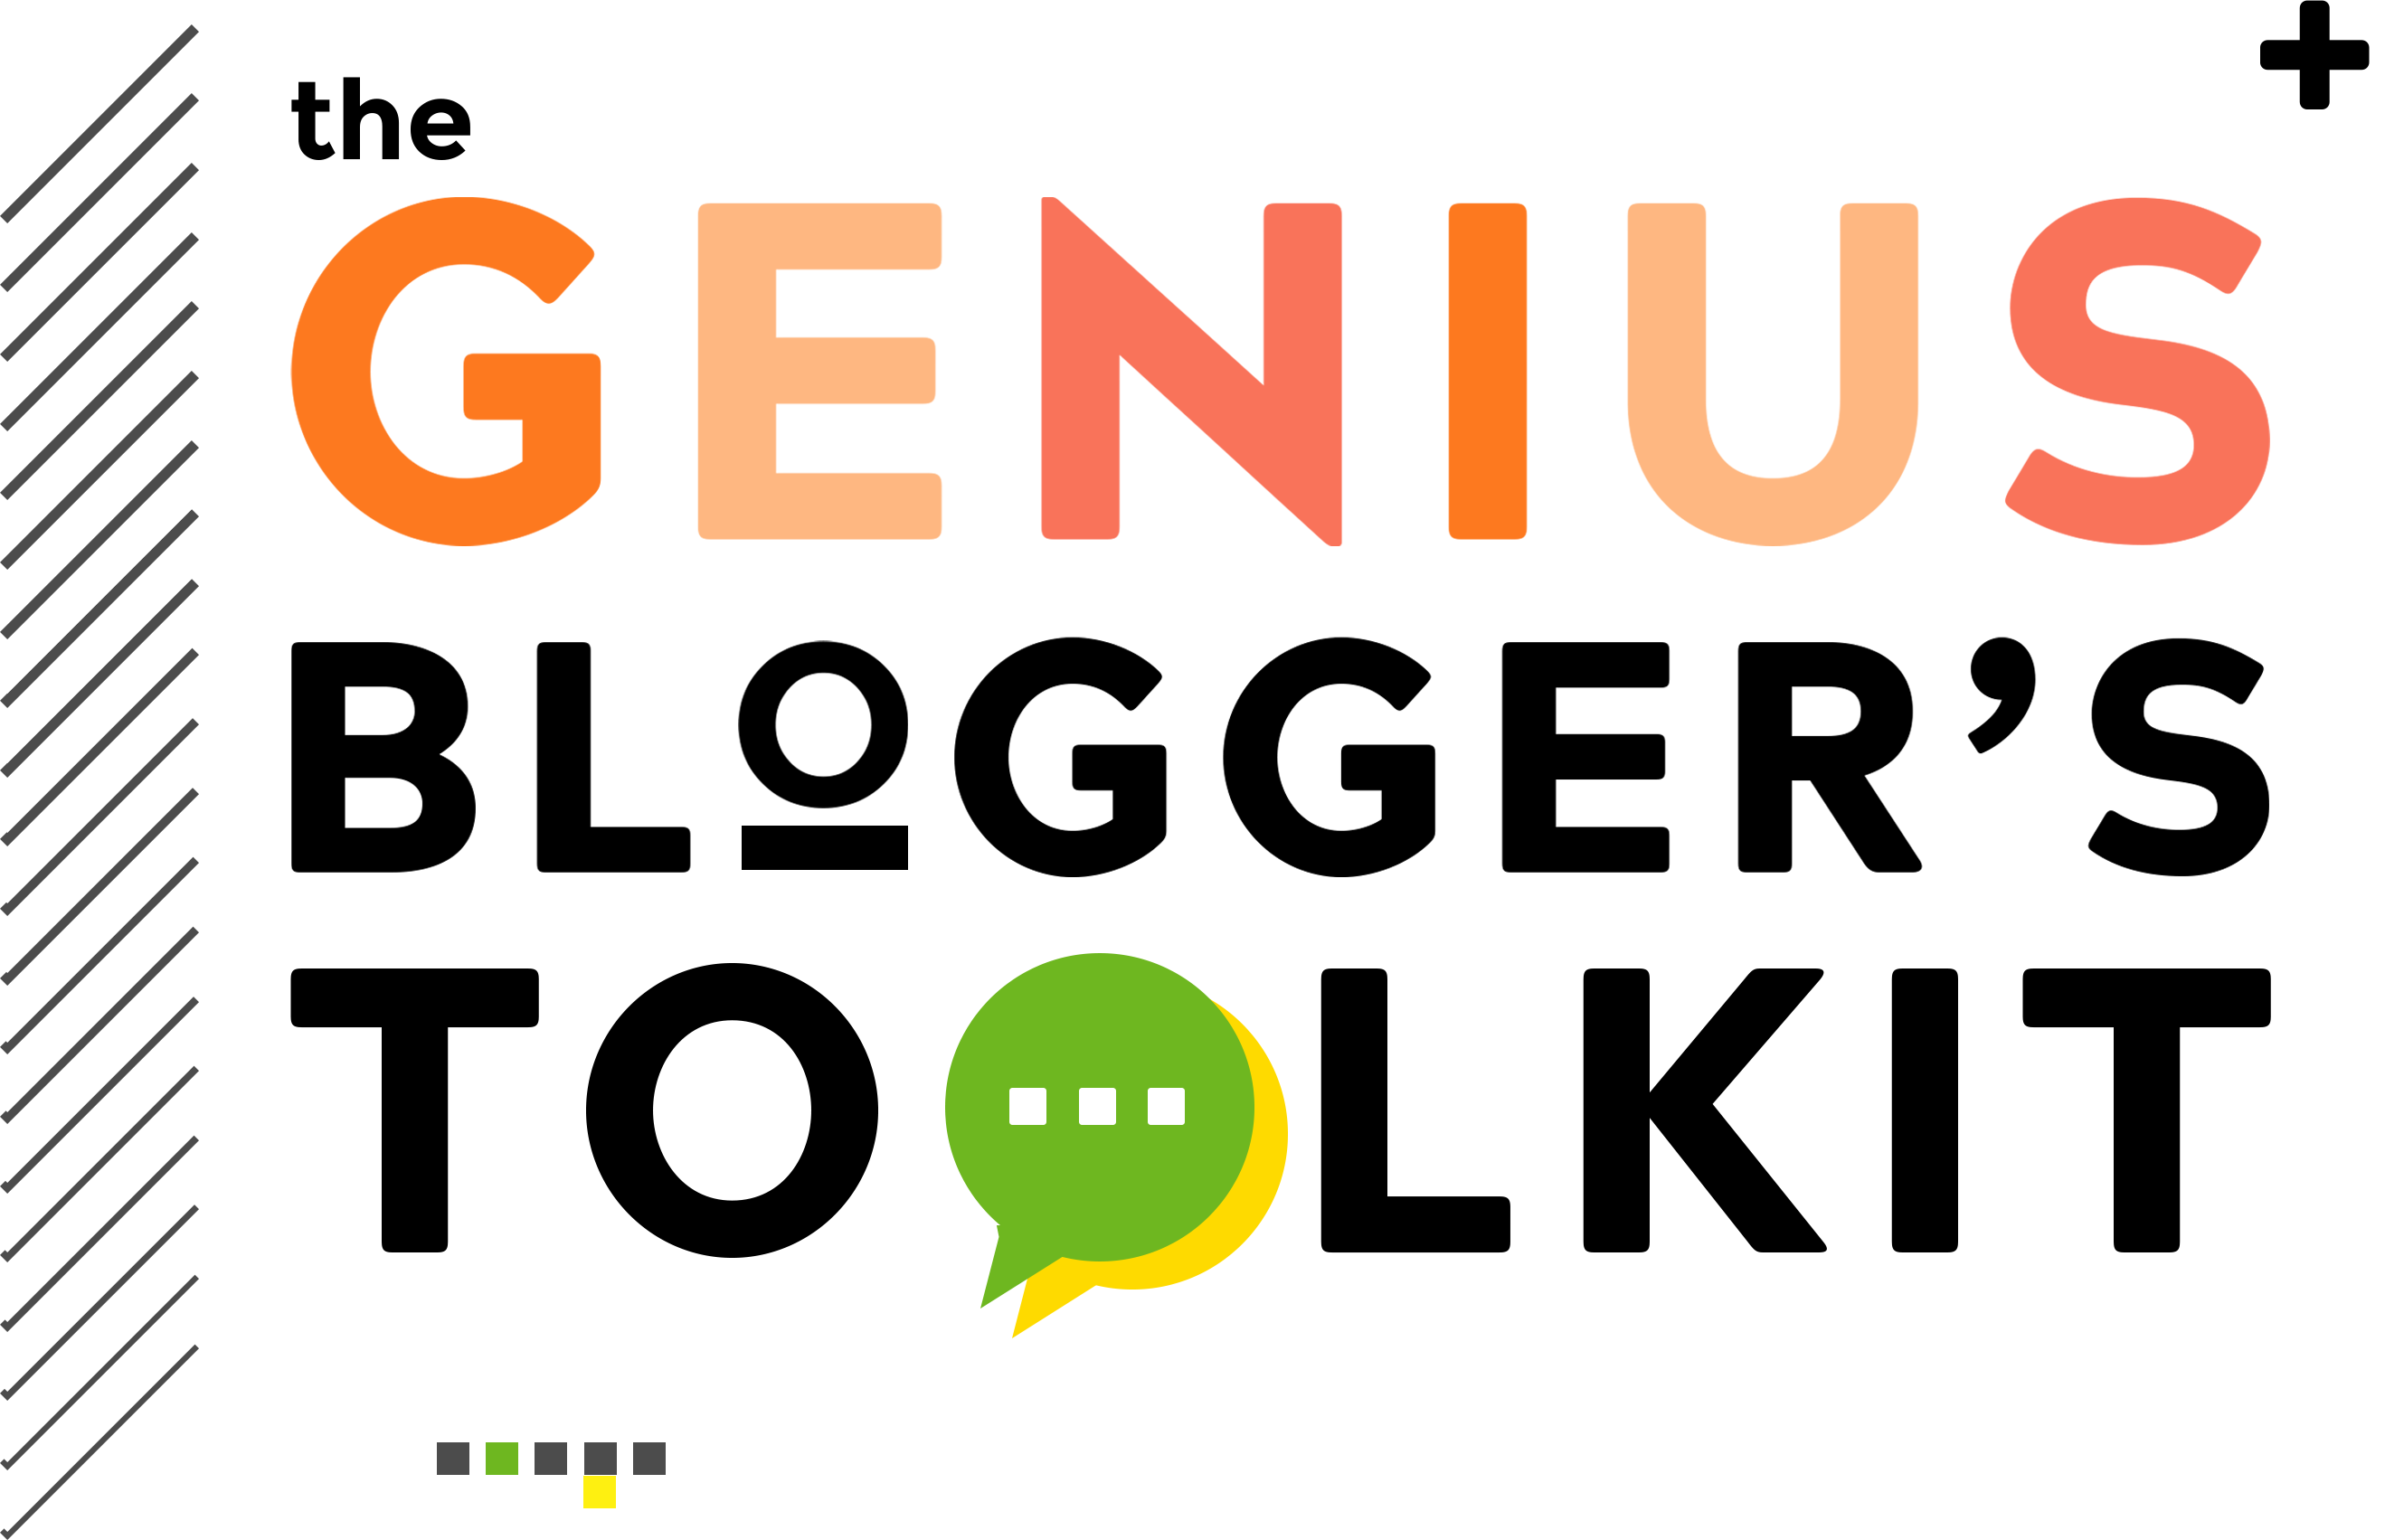 Don't Miss The Genius Blogger's Toolkit 2018!